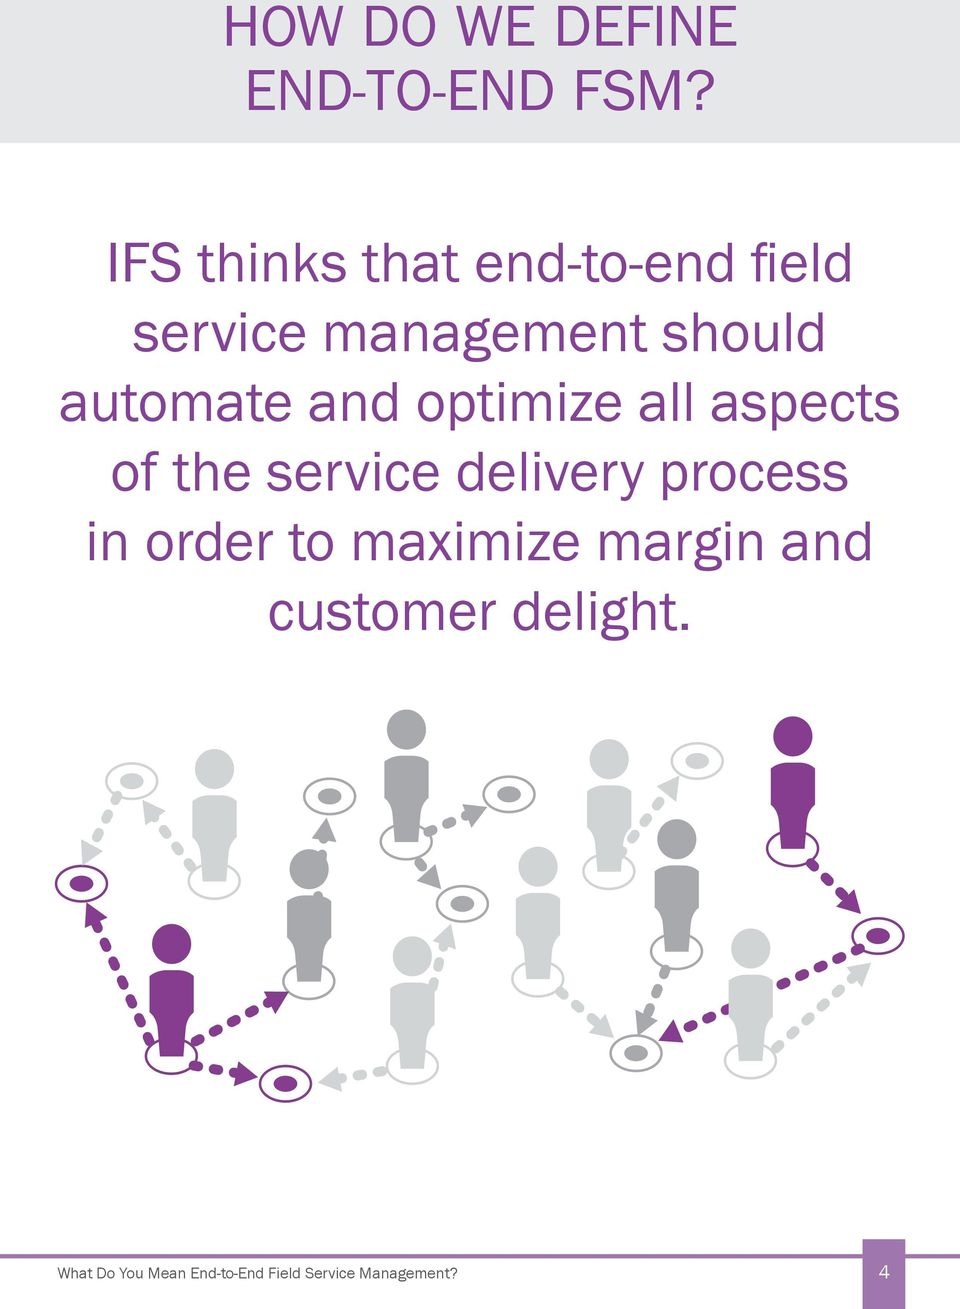 automate and optimize all aspects of the service delivery process